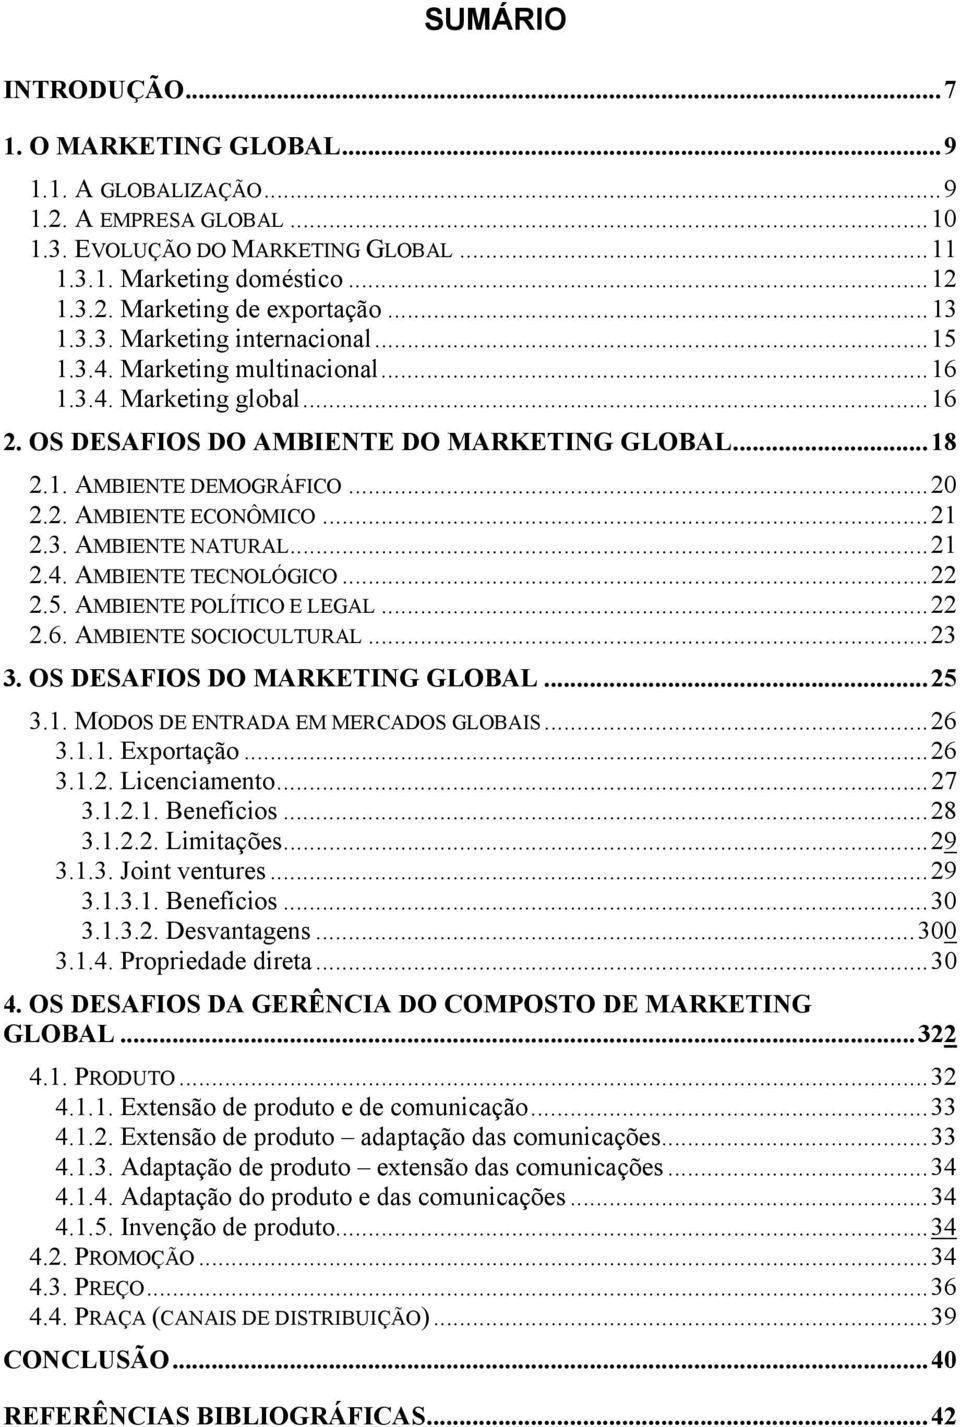 ..21 2.3. AMBIENTE NATURAL...21 2.4. AMBIENTE TECNOLÓGICO...22 2.5. AMBIENTE POLÍTICO E LEGAL...22 2.6. AMBIENTE SOCIOCULTURAL...23 3. OS DESAFIOS DO MARKETING GLOBAL...25 3.1. MODOS DE ENTRADA EM MERCADOS GLOBAIS.